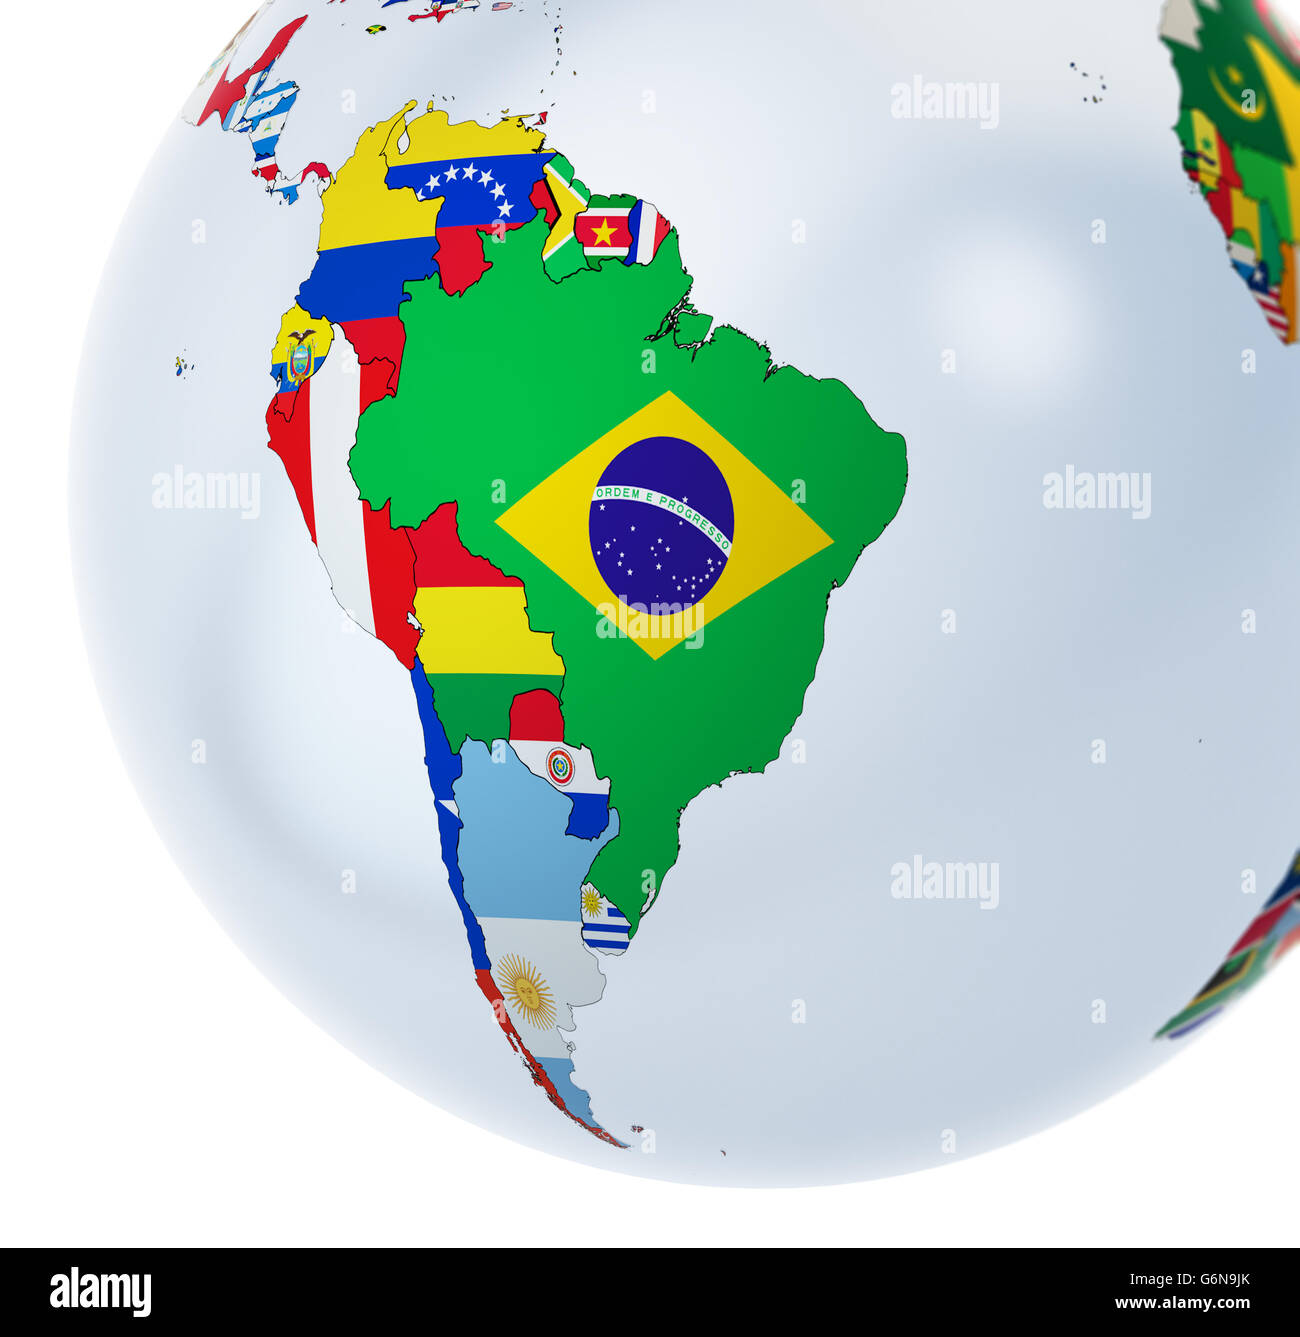 3D globe with national flags - 3D illustration - Stock Image